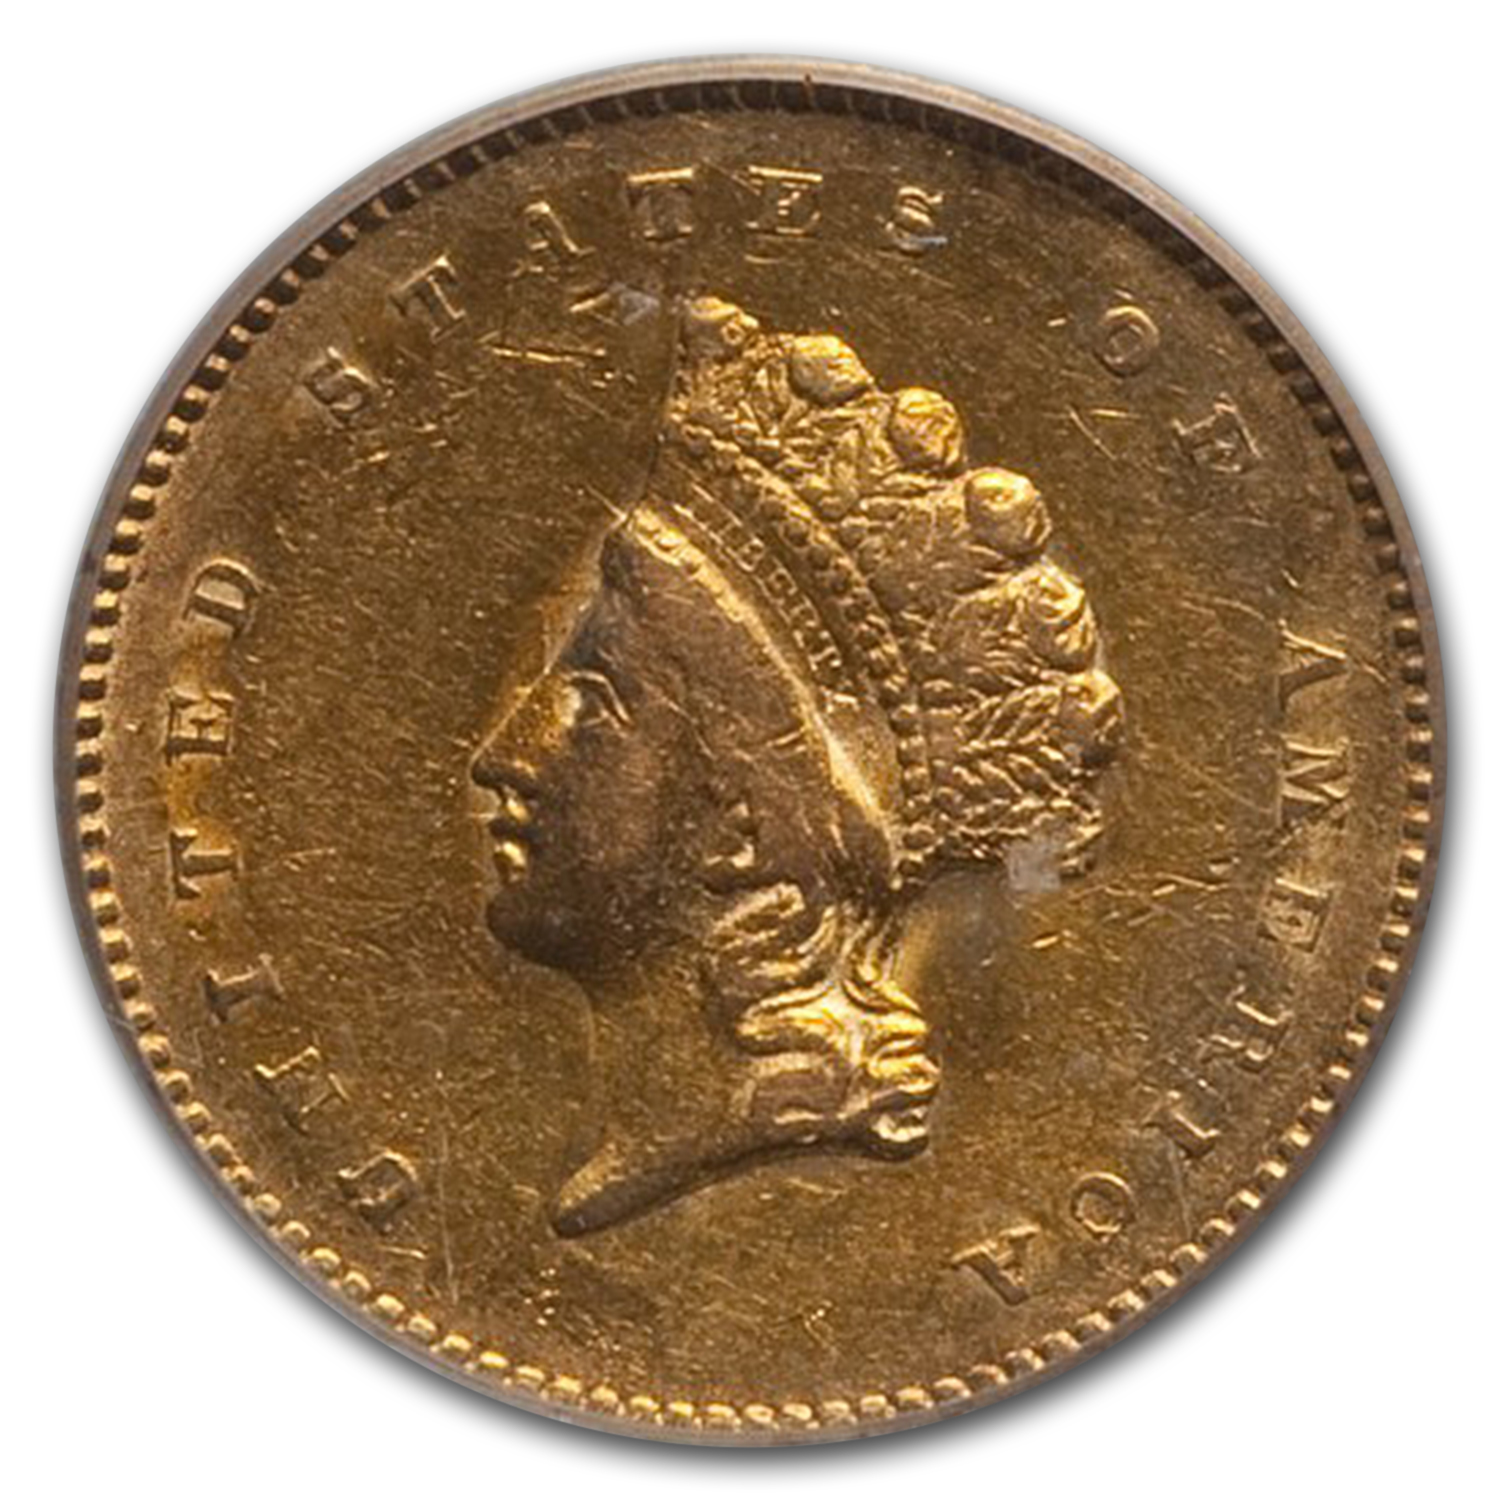 1854 $1 Indian Head Gold Type-2 AU-53 PCGS